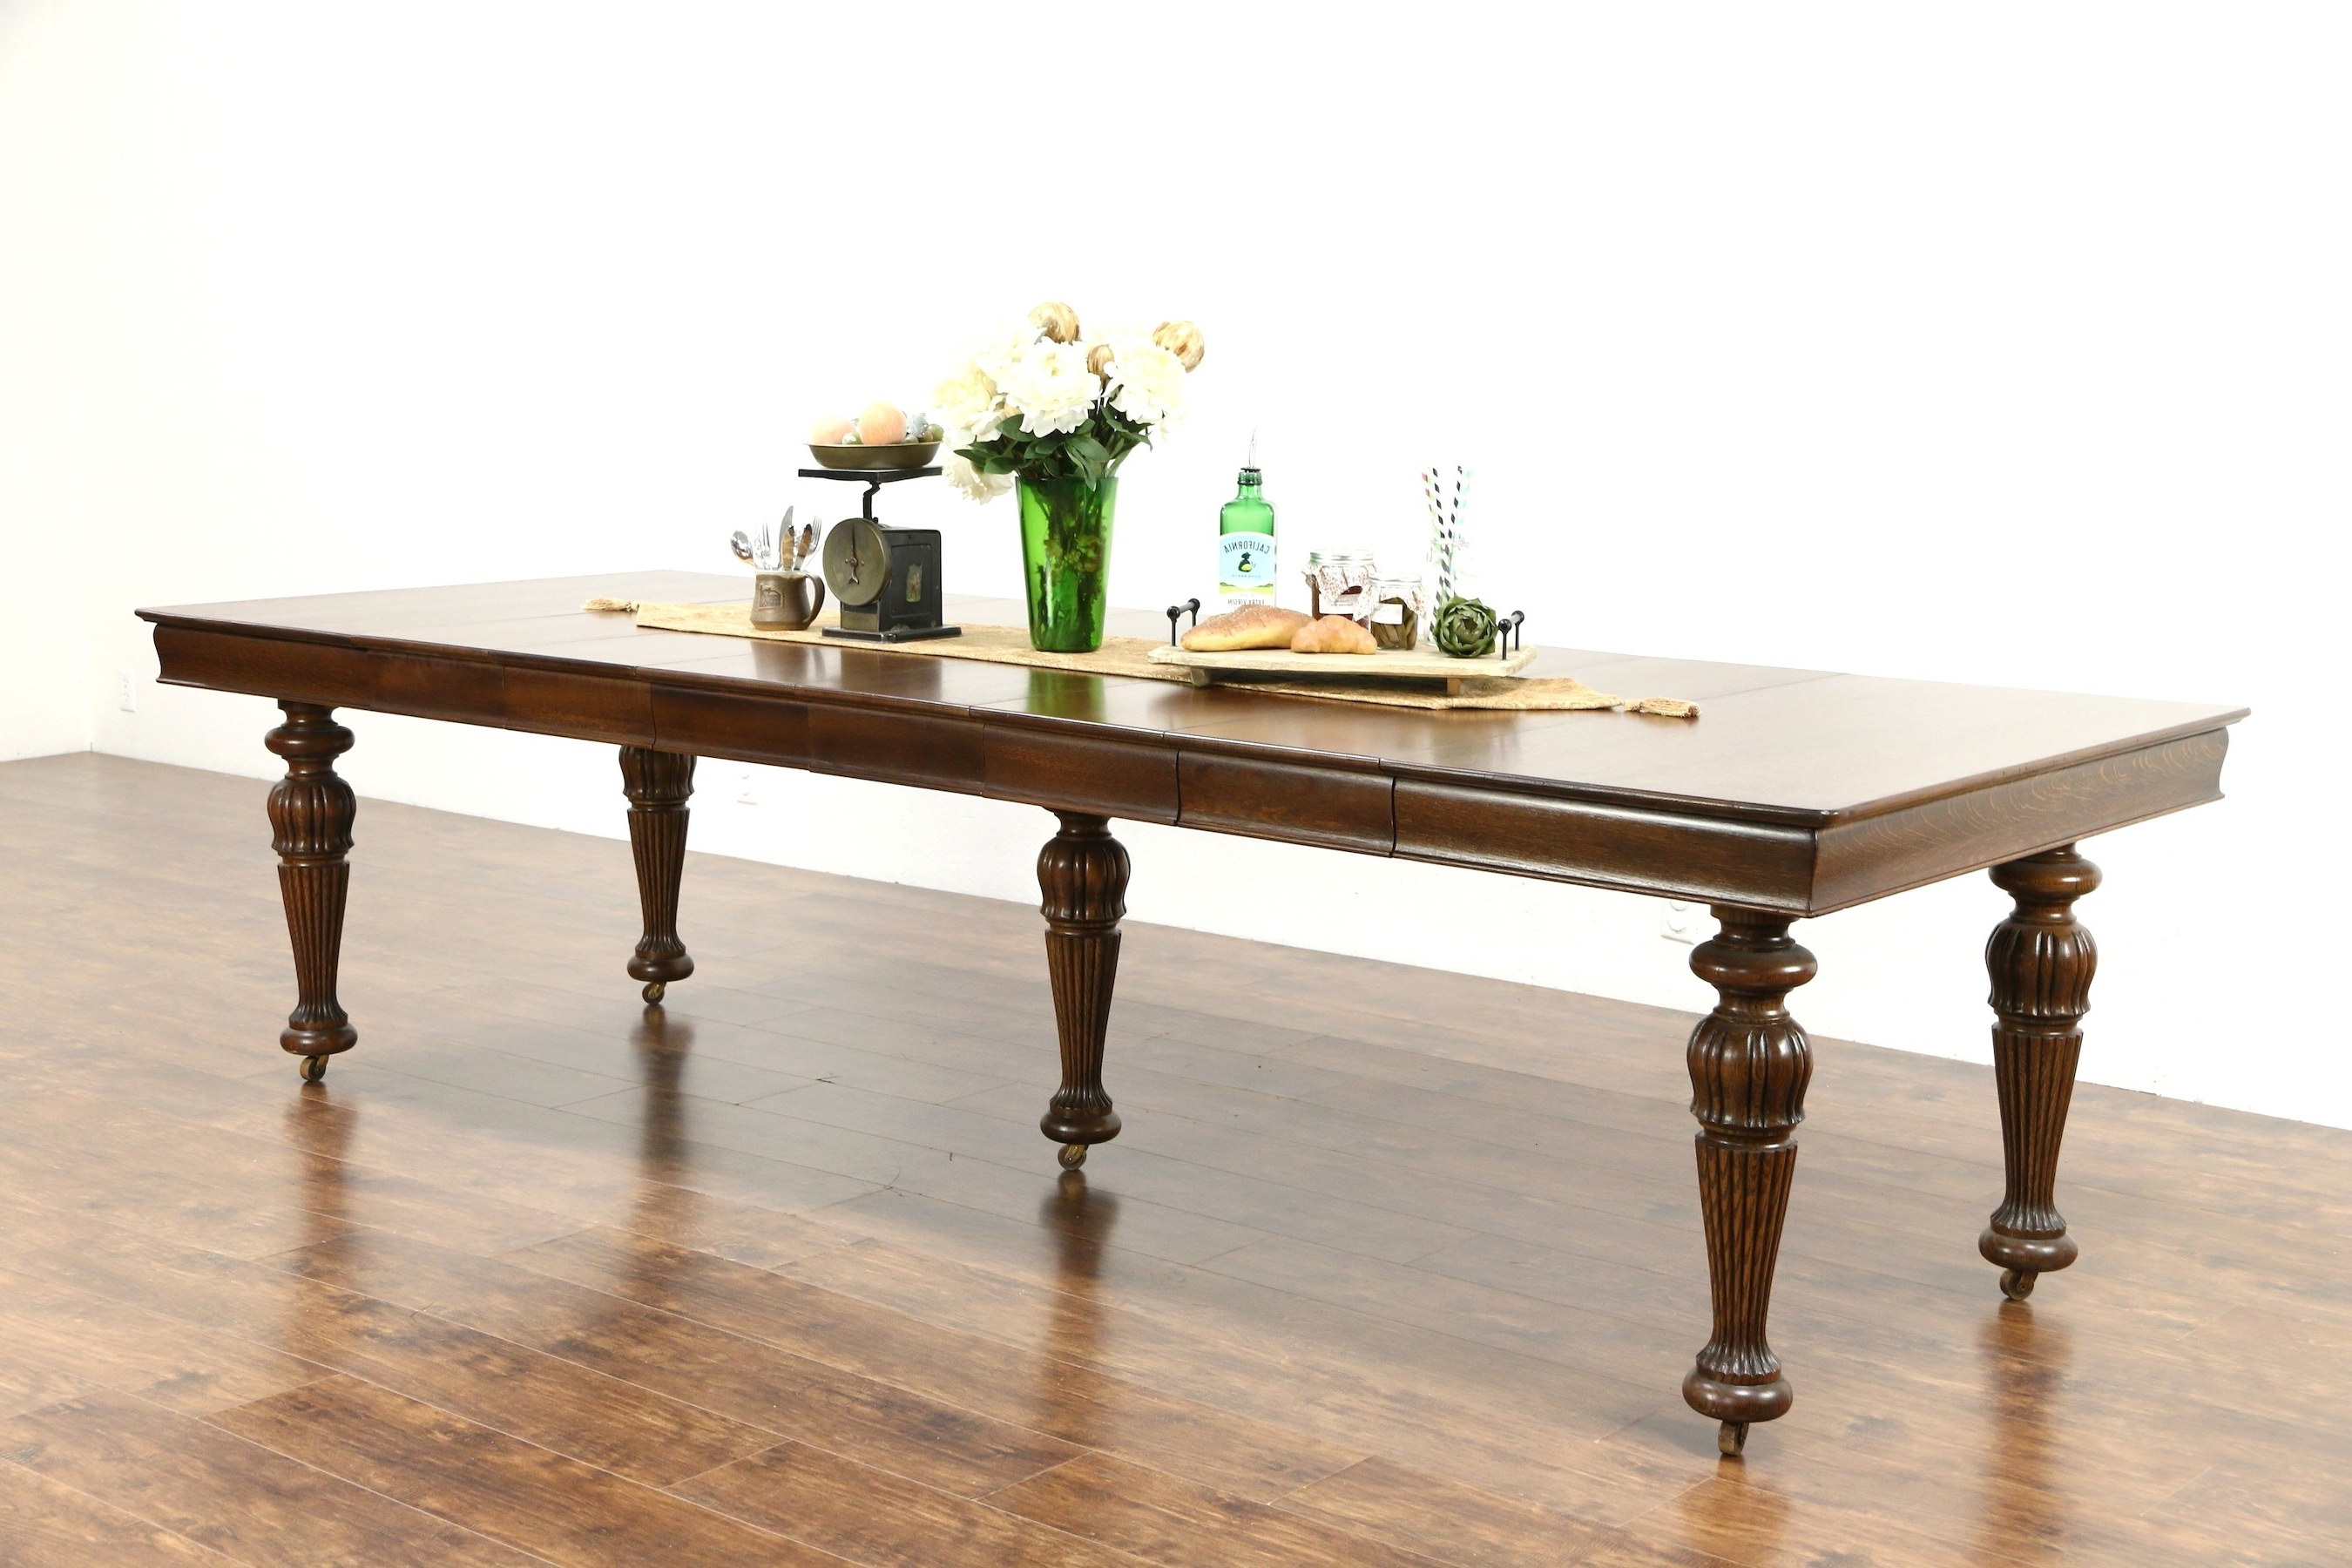 """Square Oak Antique 1900 Dining Table, 6 Leaves, Extends 9' 9"""" – Harp Intended For Trendy Square Oak Dining Tables (View 20 of 25)"""